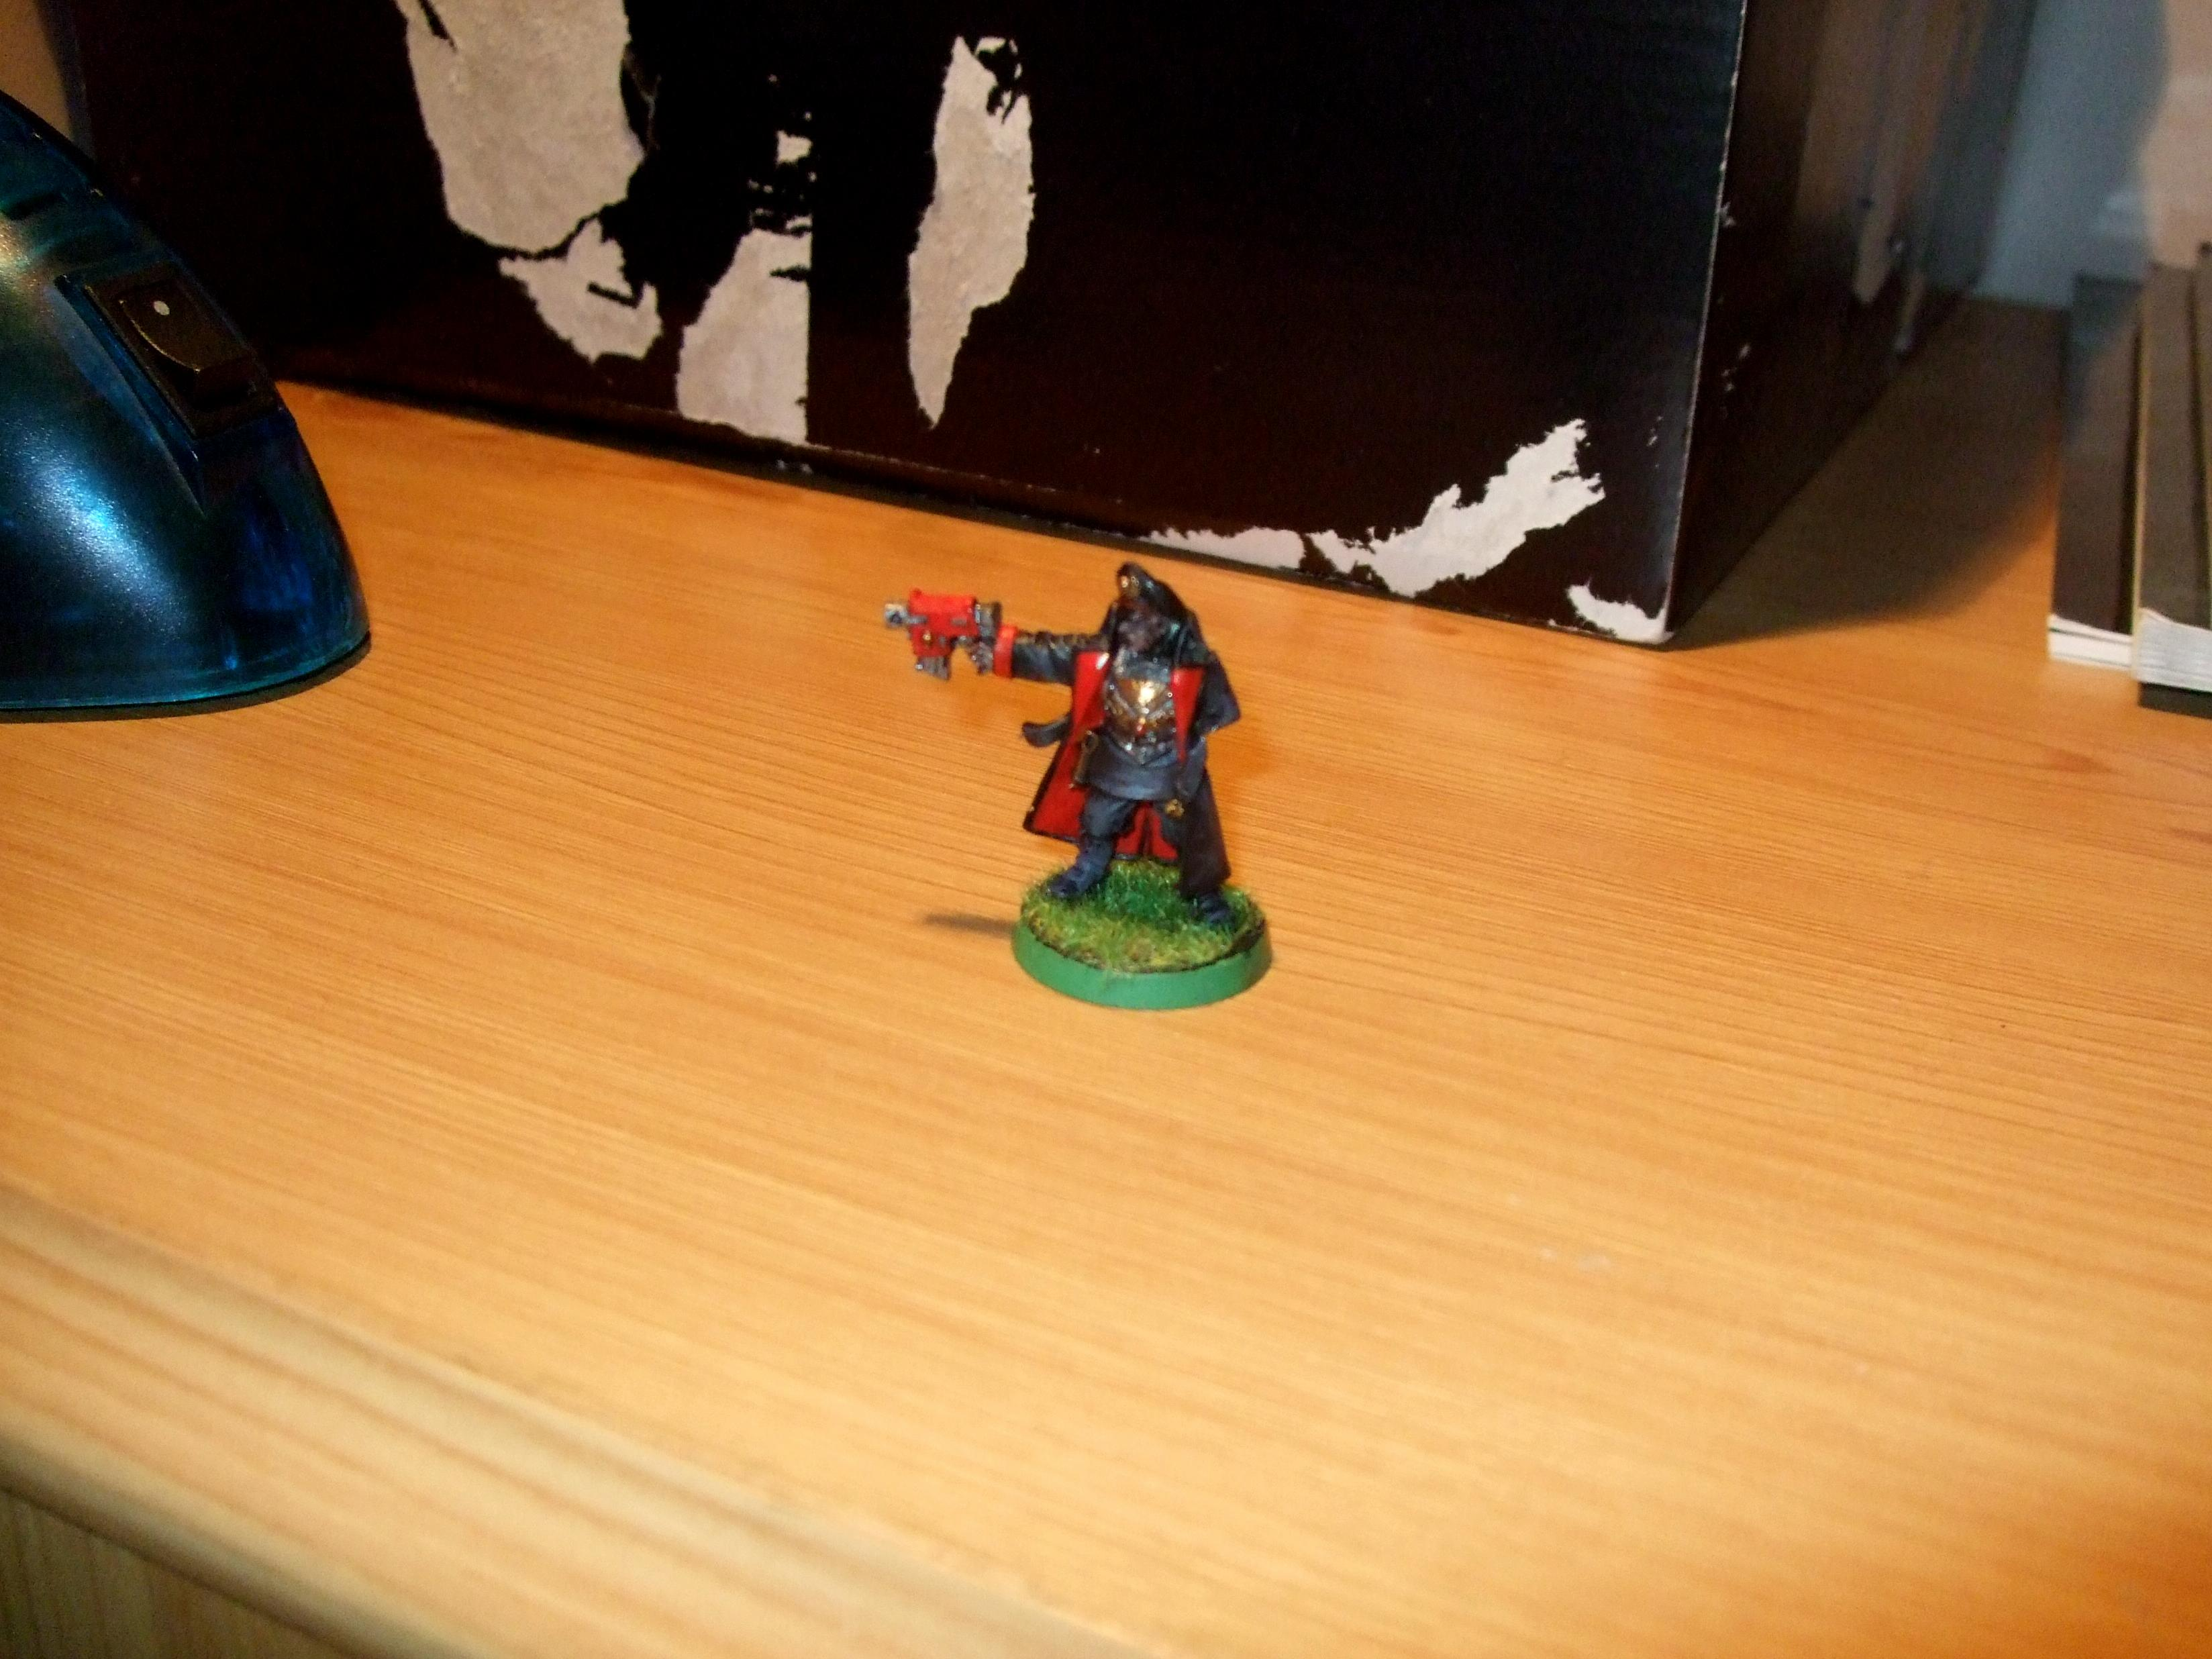 Commissar, Imperial, Imperial Guard, Warhammer 40,000